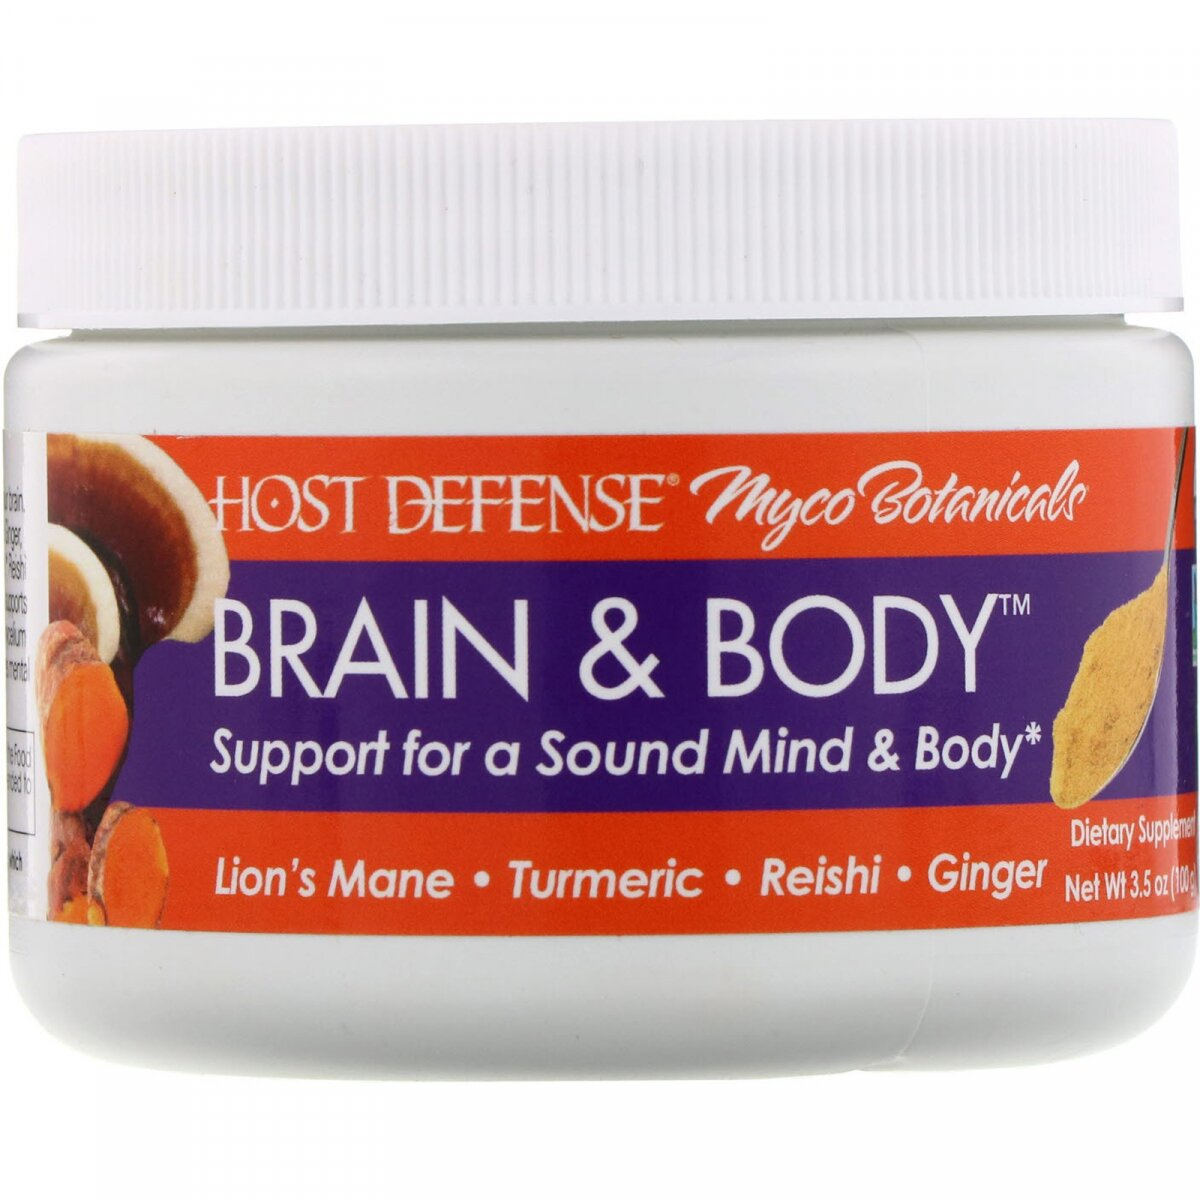 Мозг и тело, Myco Botanicals, Brain & Body, Fungi Perfecti, 100 г